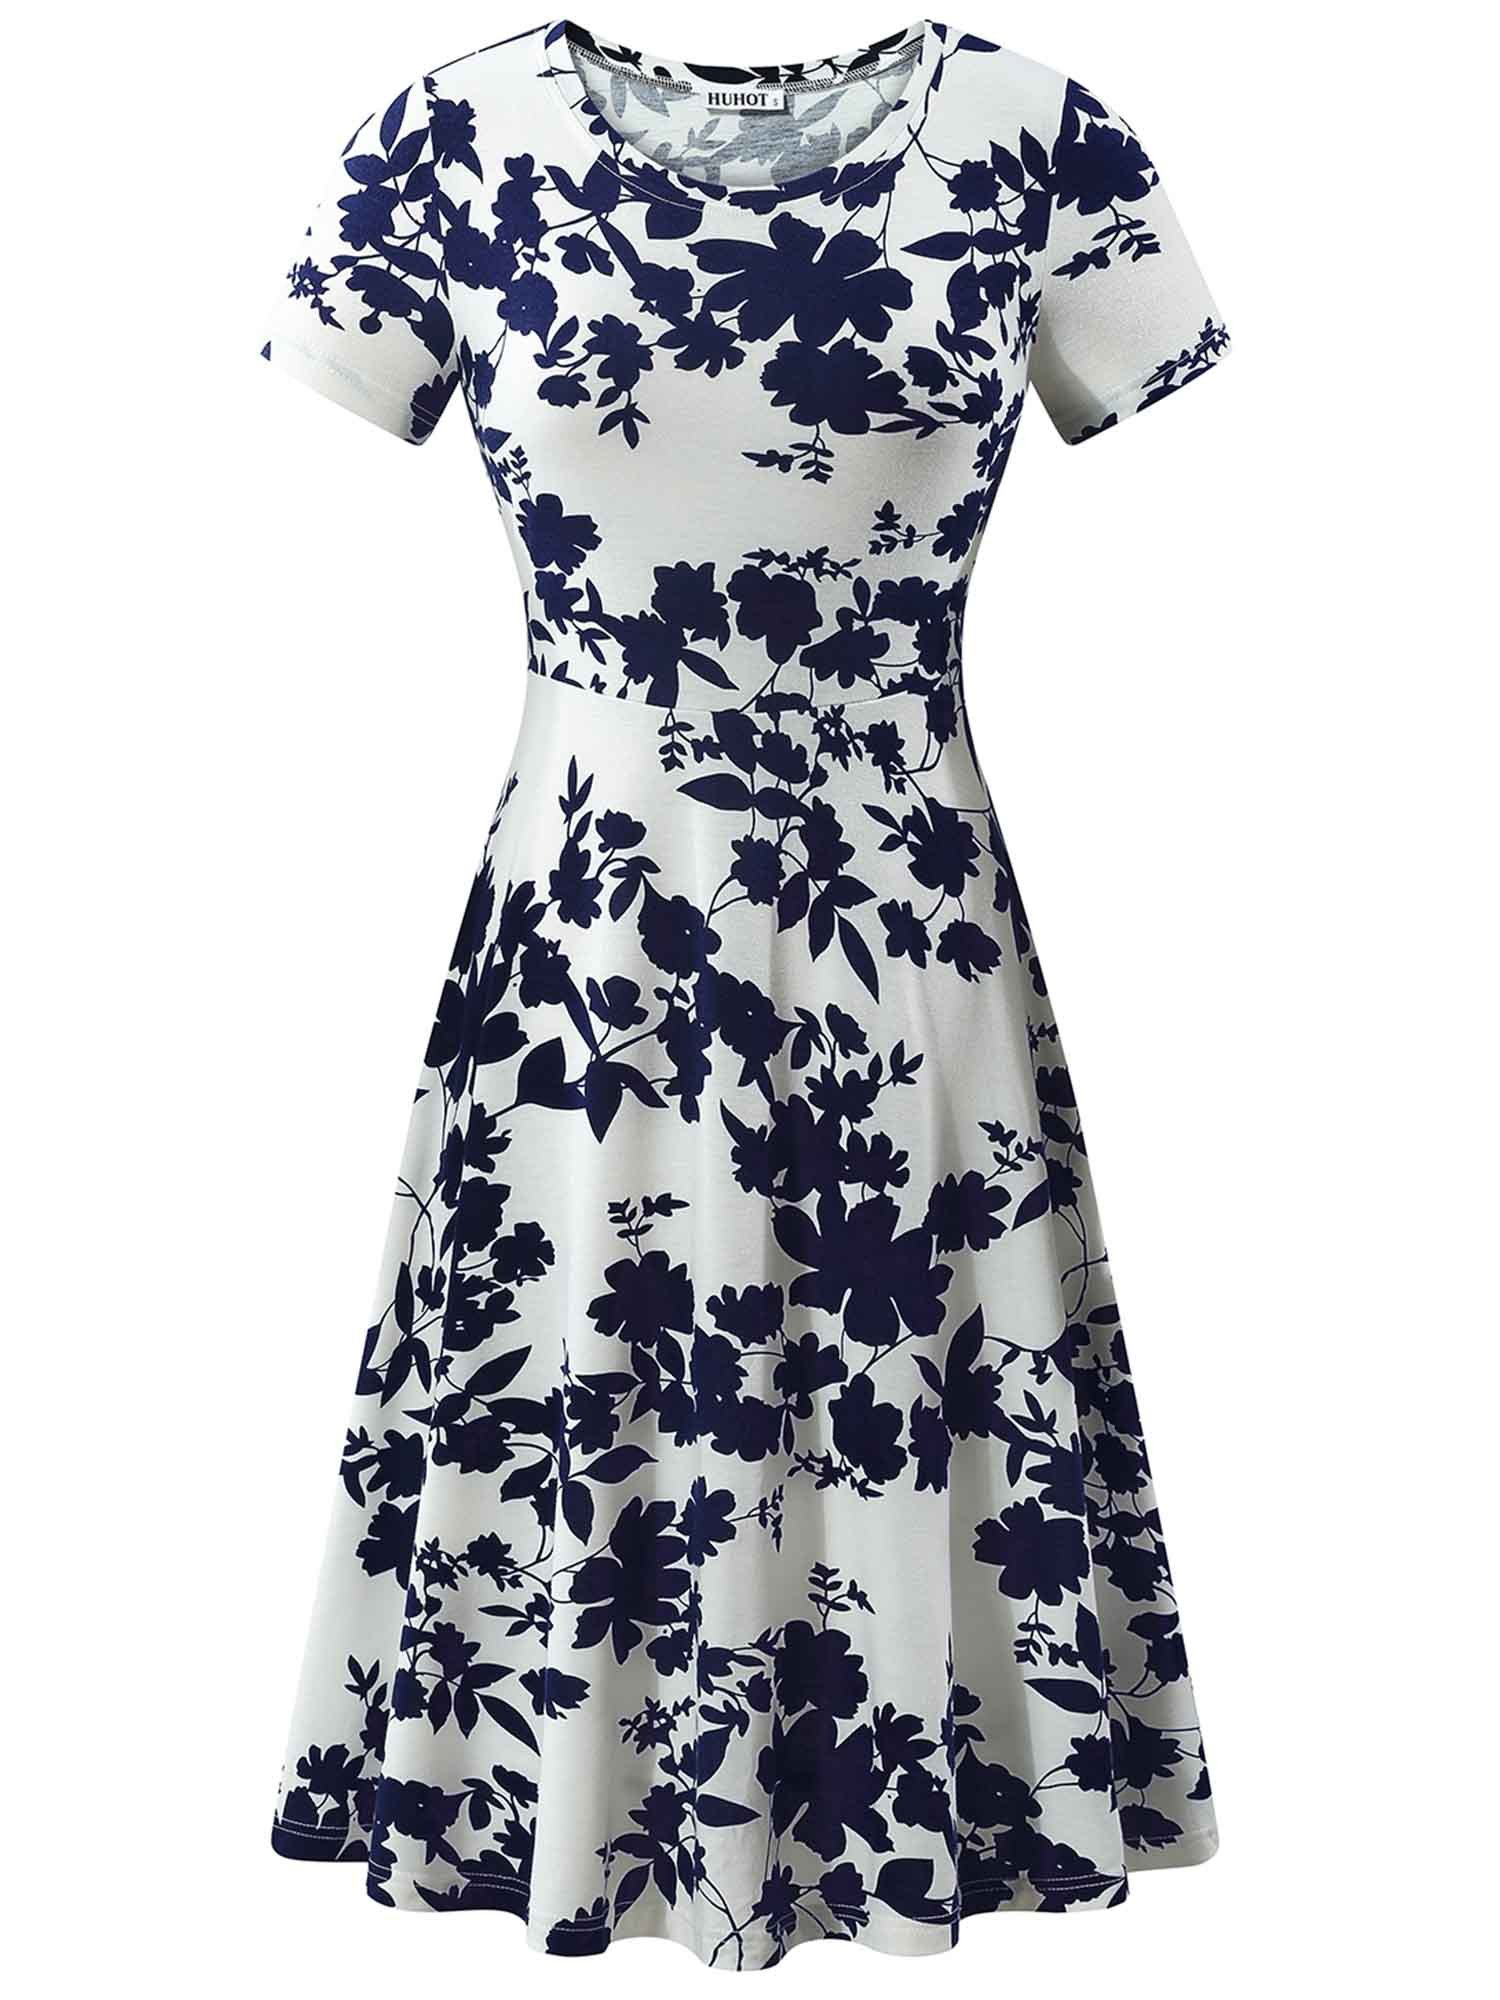 HUHOT Swing Dresses, Women Knee Length Summer Flared Flower Midi Dress for Ladies(Flower-5,Large)